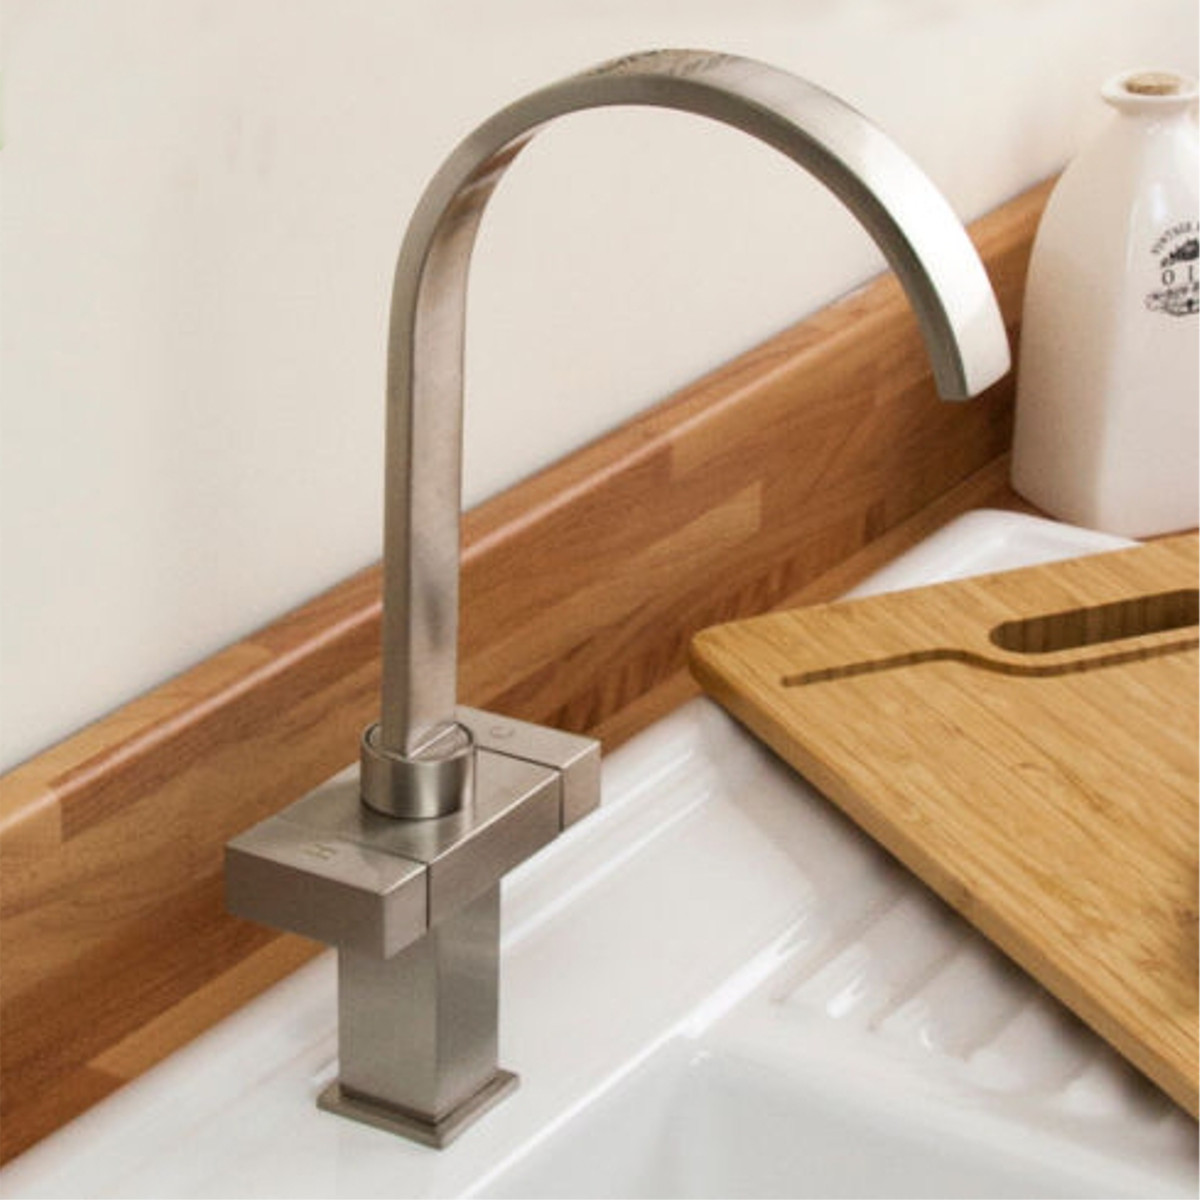 Multi Style Chrome Modern Pull Out Kitchen Taps Mixer Swivel Brushed